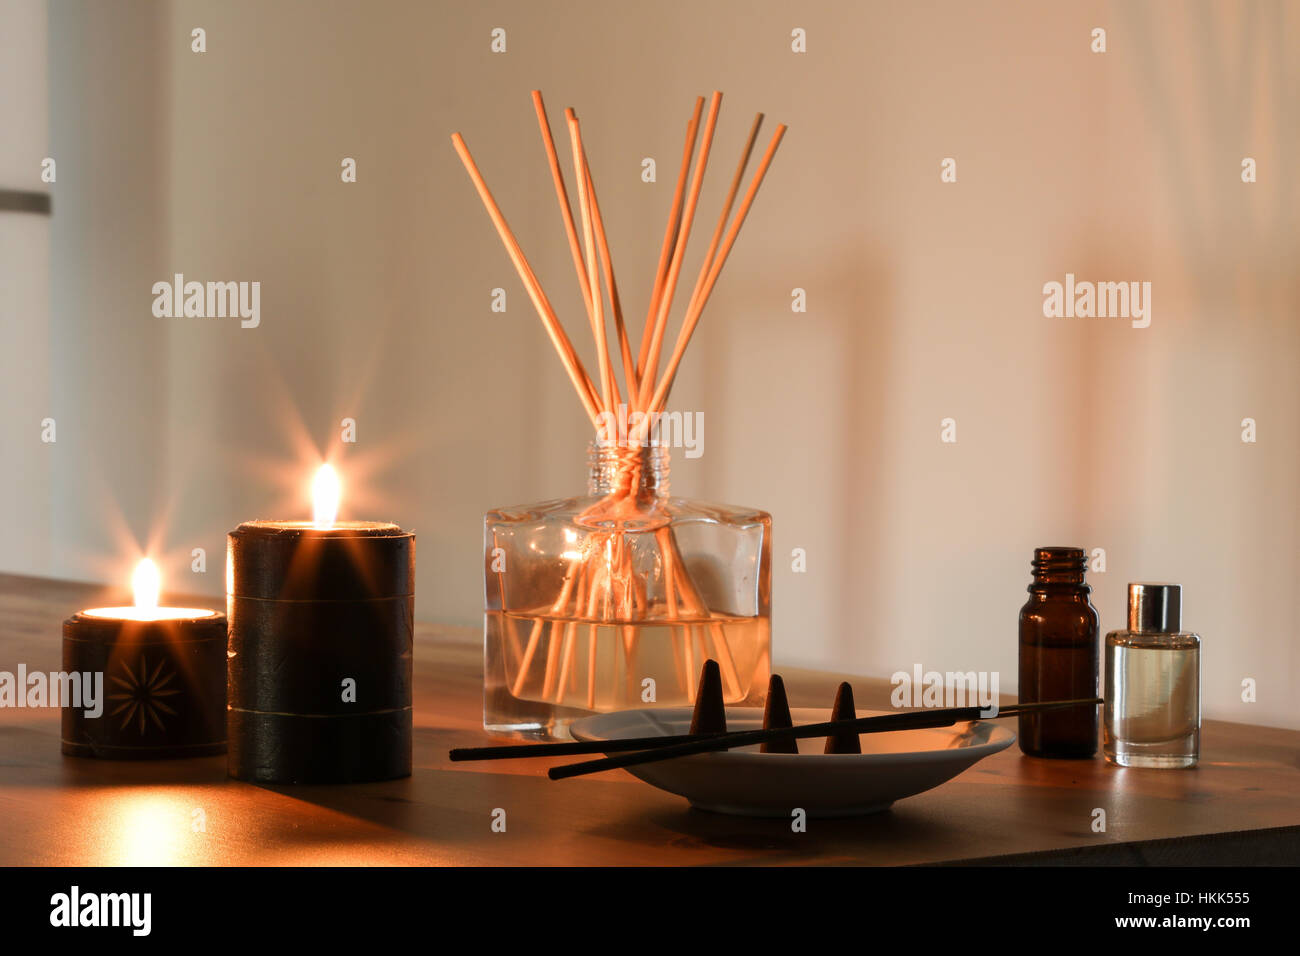 Home Fragrance Atmosphere Candles Incense scent smell glass glow